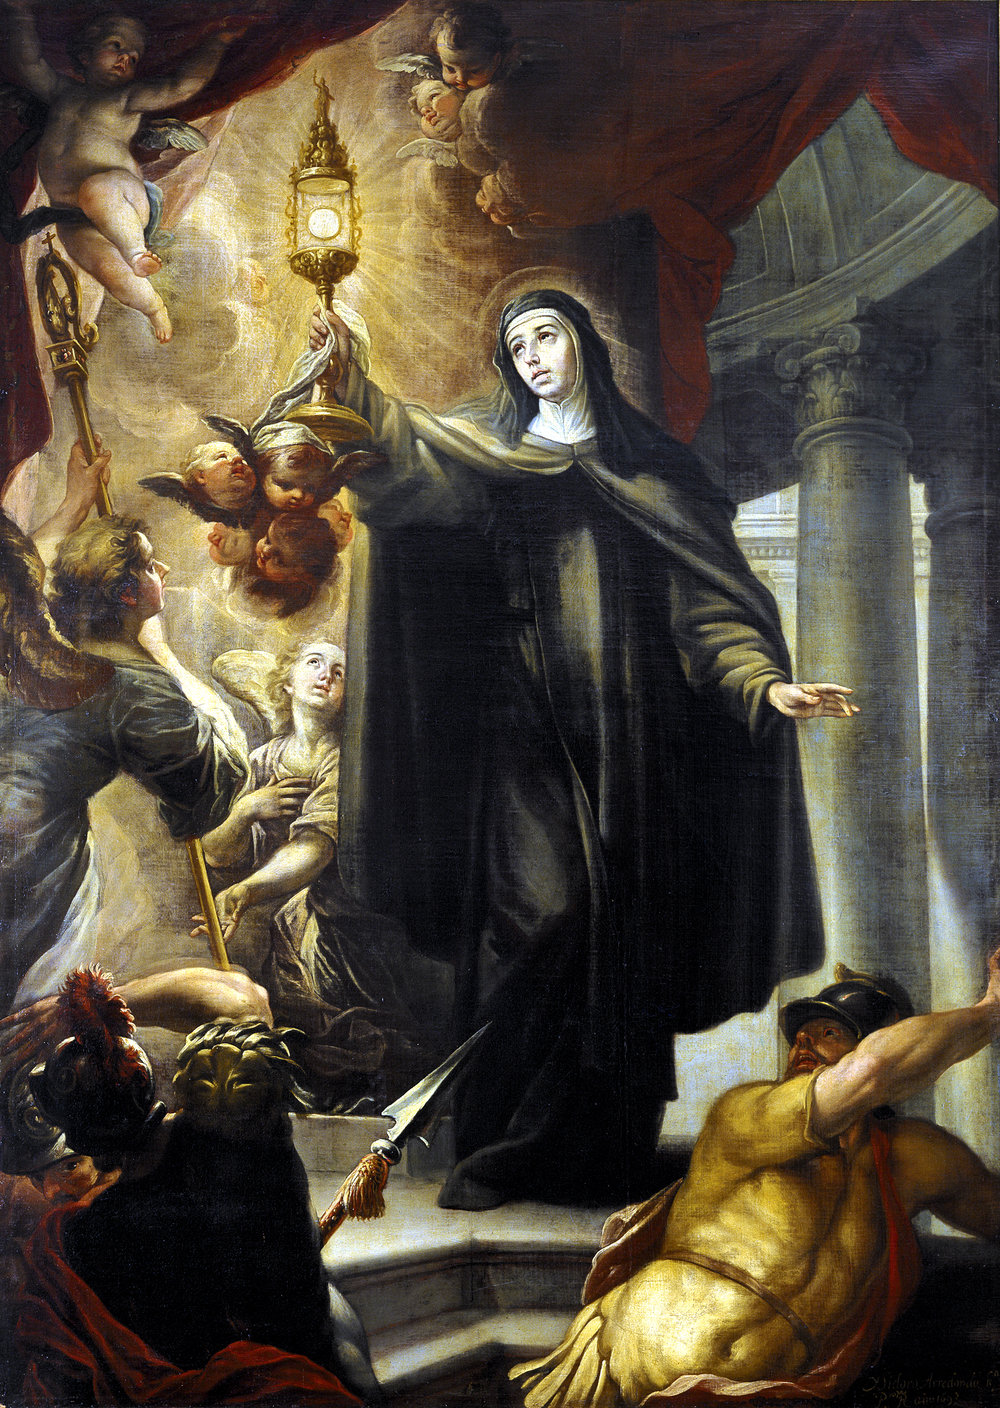 St. Clare scaring the infidels with the Eucharist.